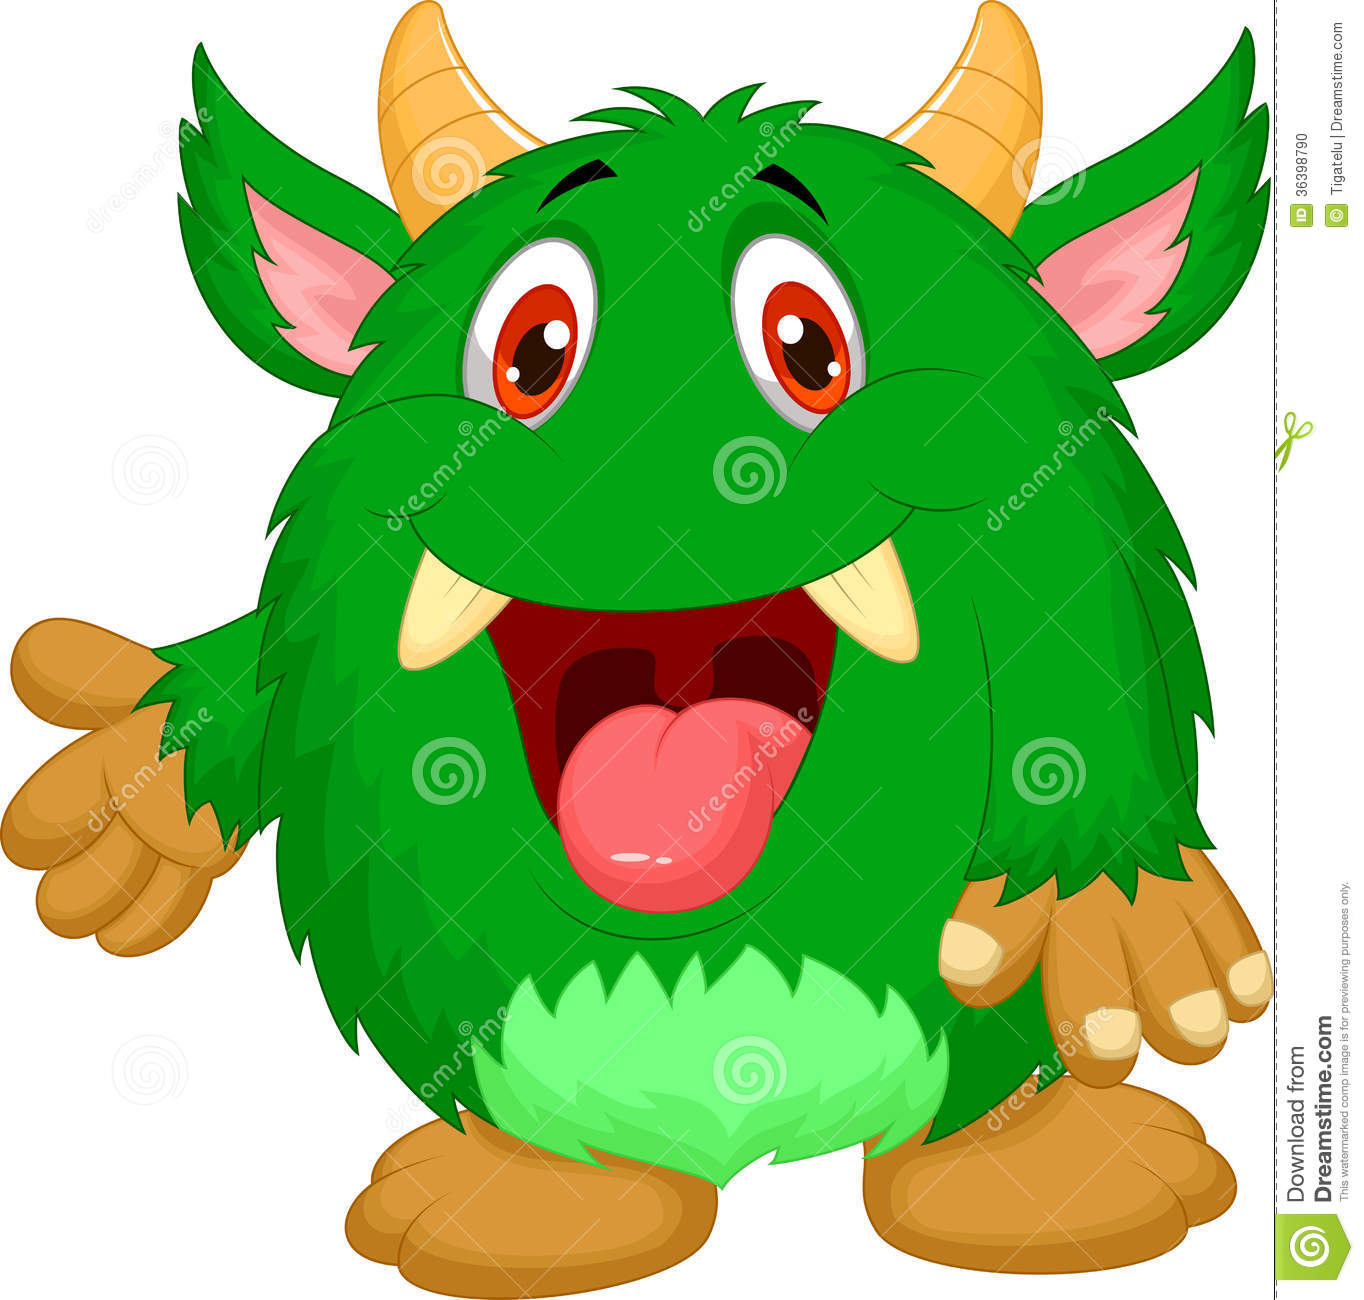 Cute Green Monster Cartoon Stock Photo - Image: 36398790